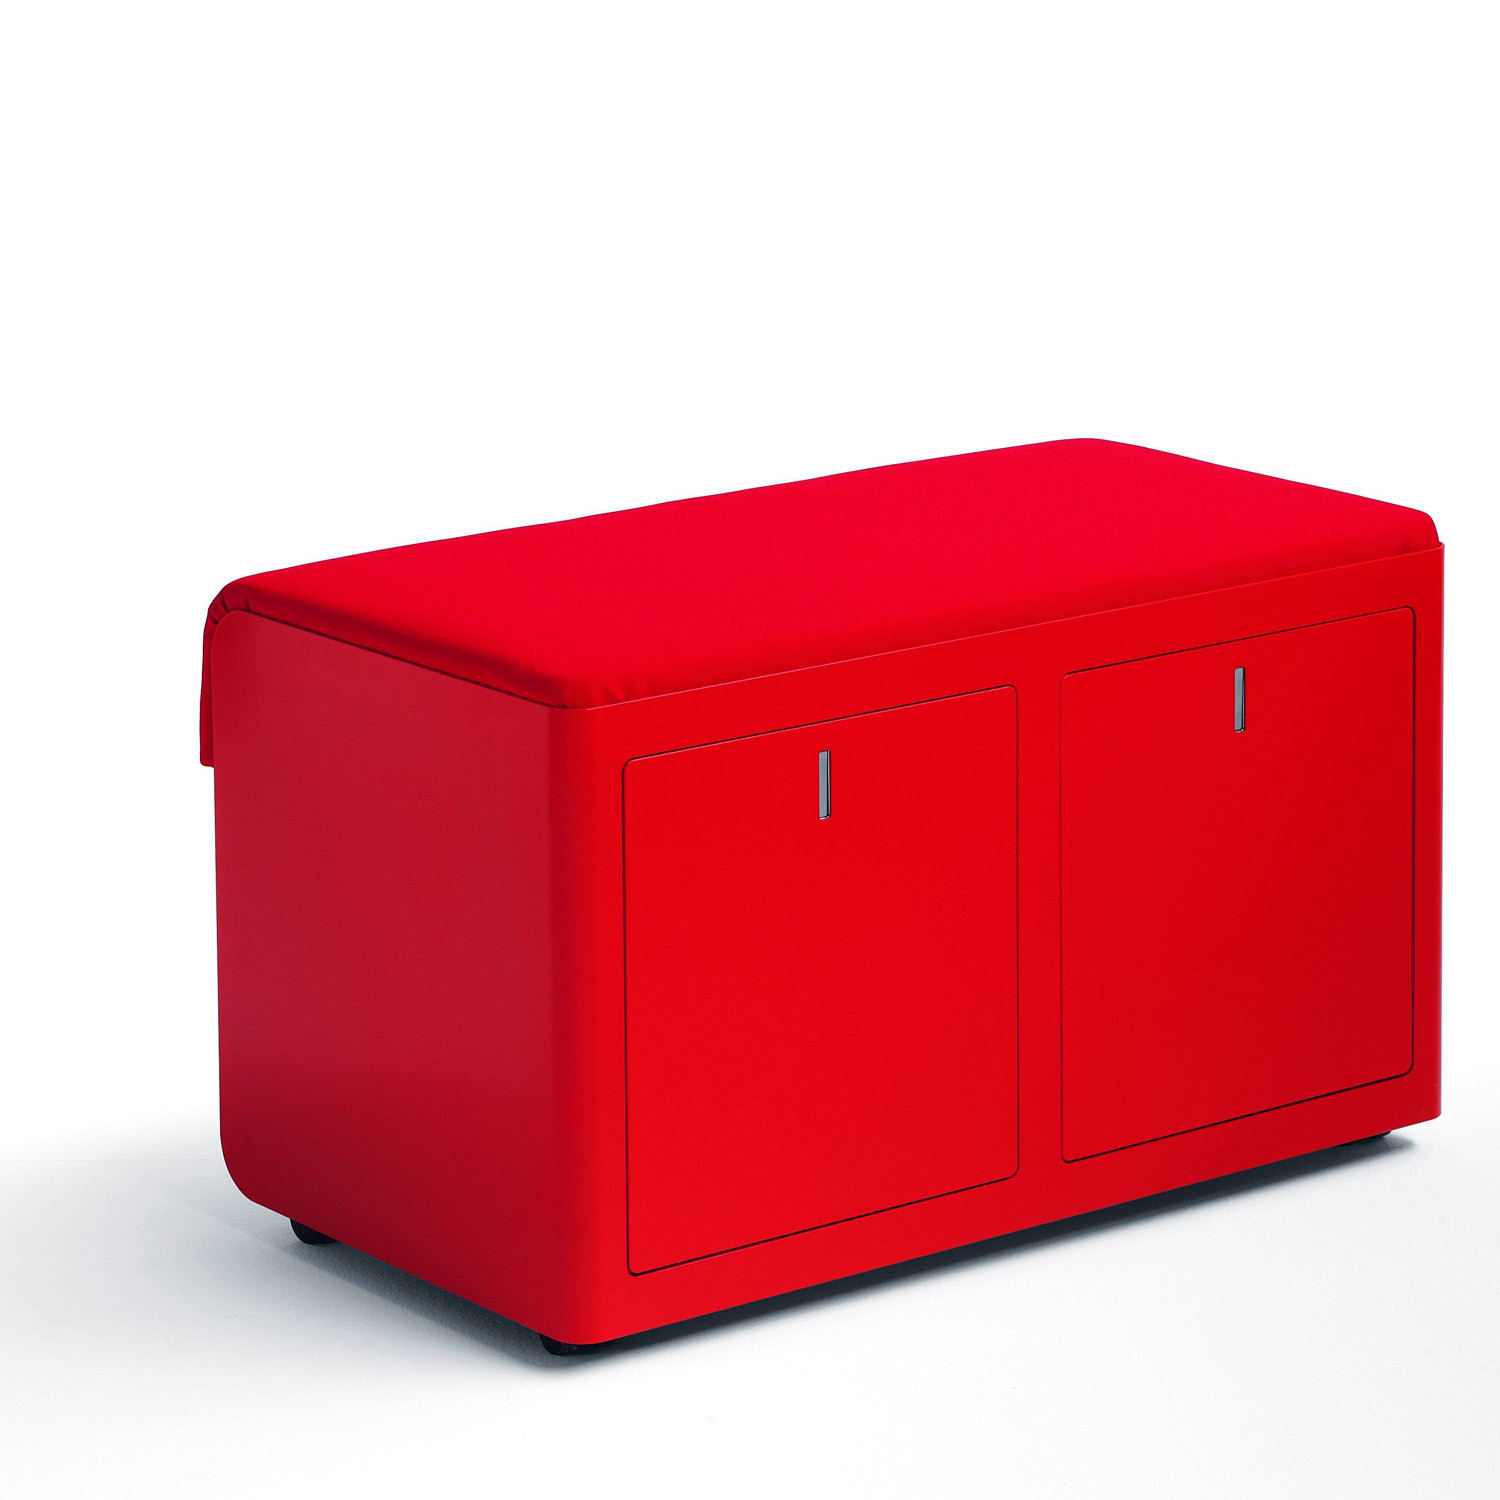 Cbox Double Pedestal With Seat Pad